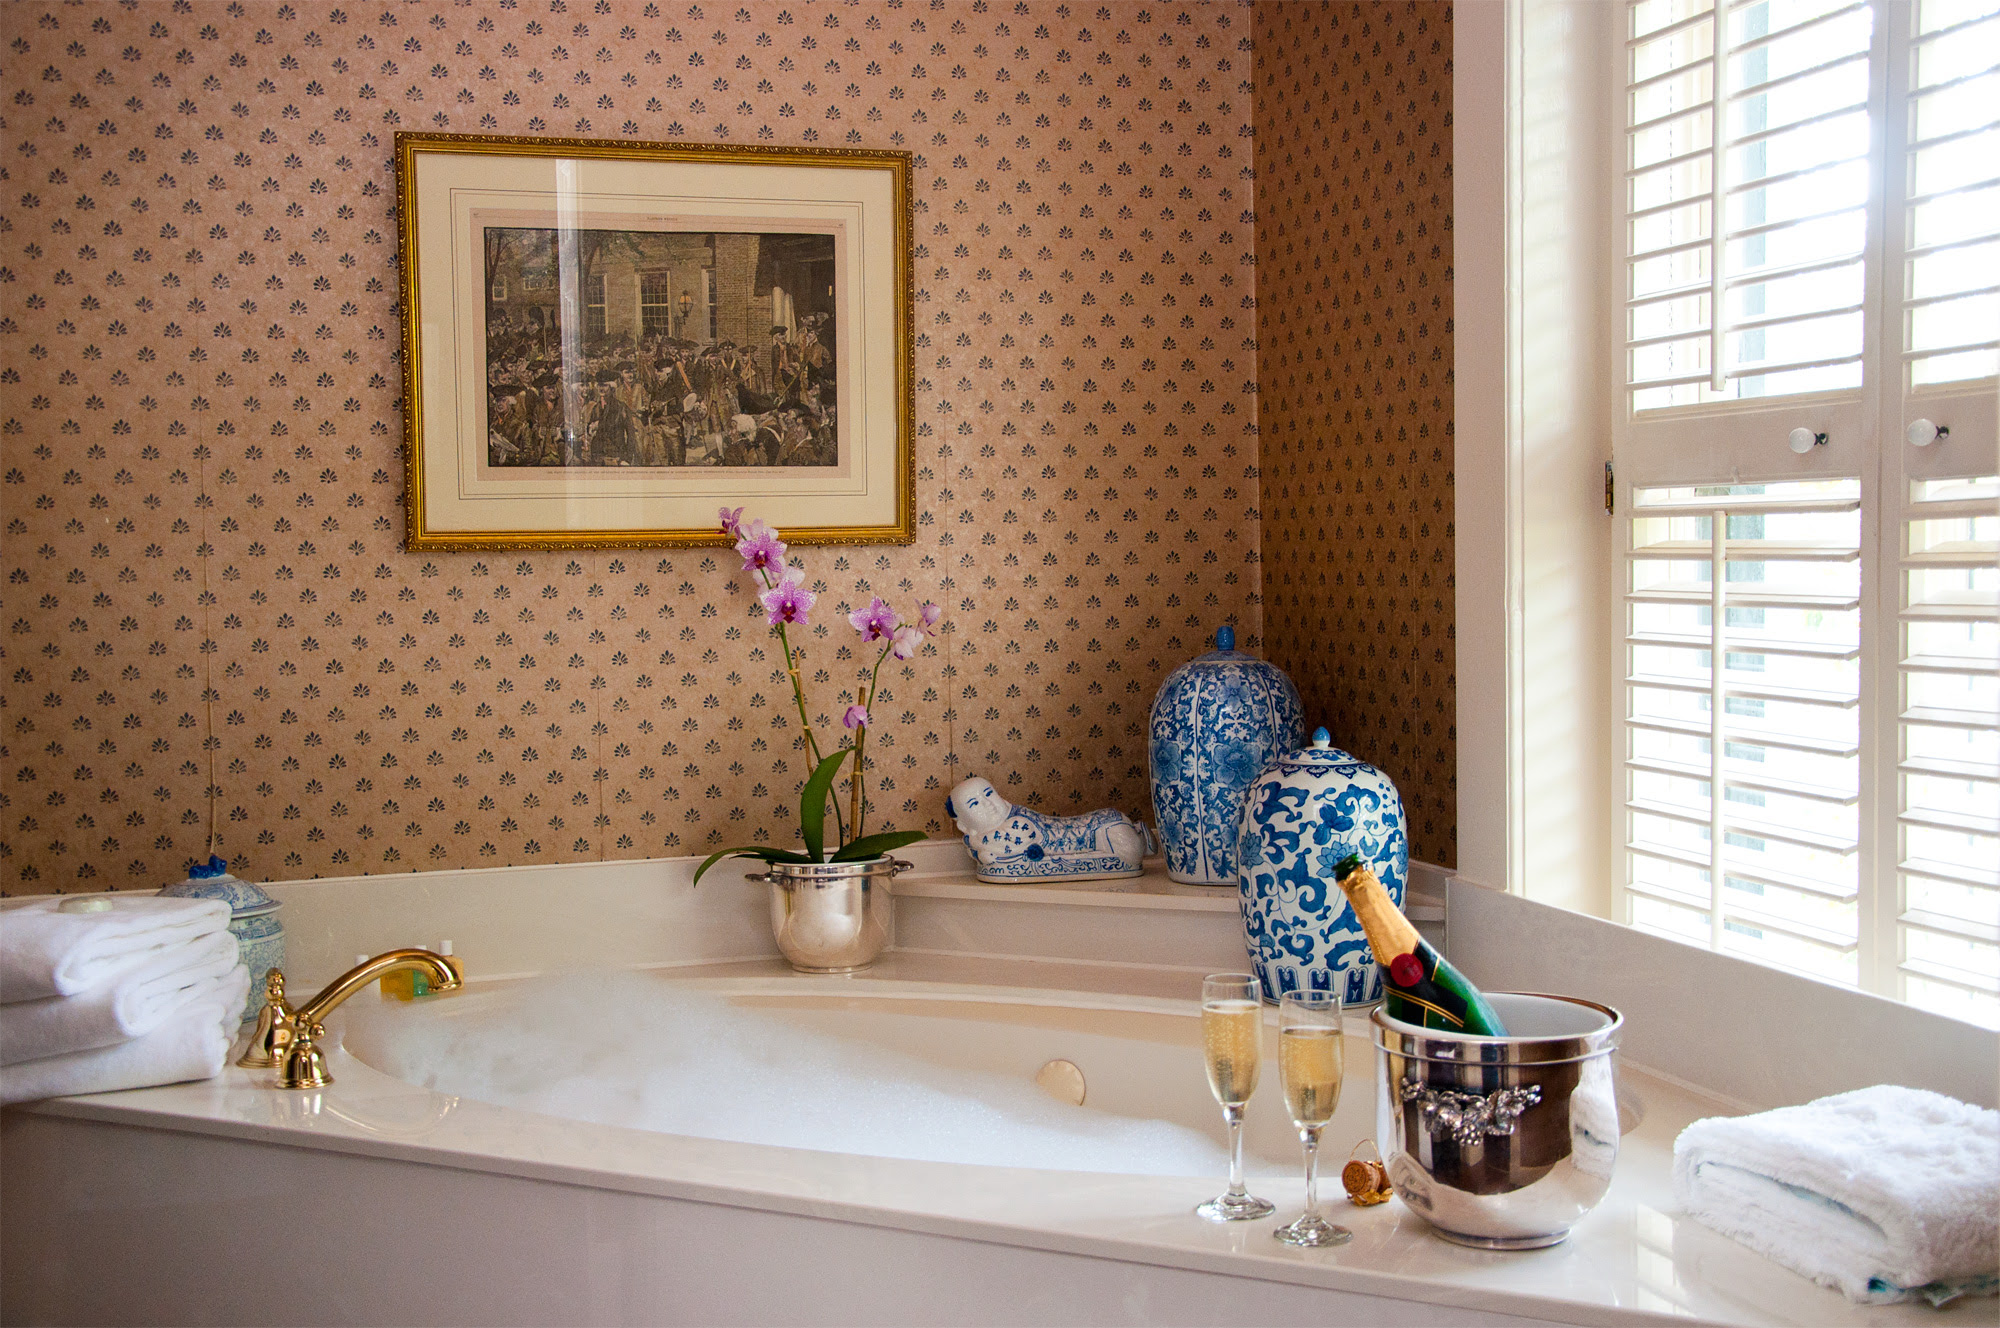 Unique Bathroom Ideas to Try, From Vintage Vanities to Faux ...